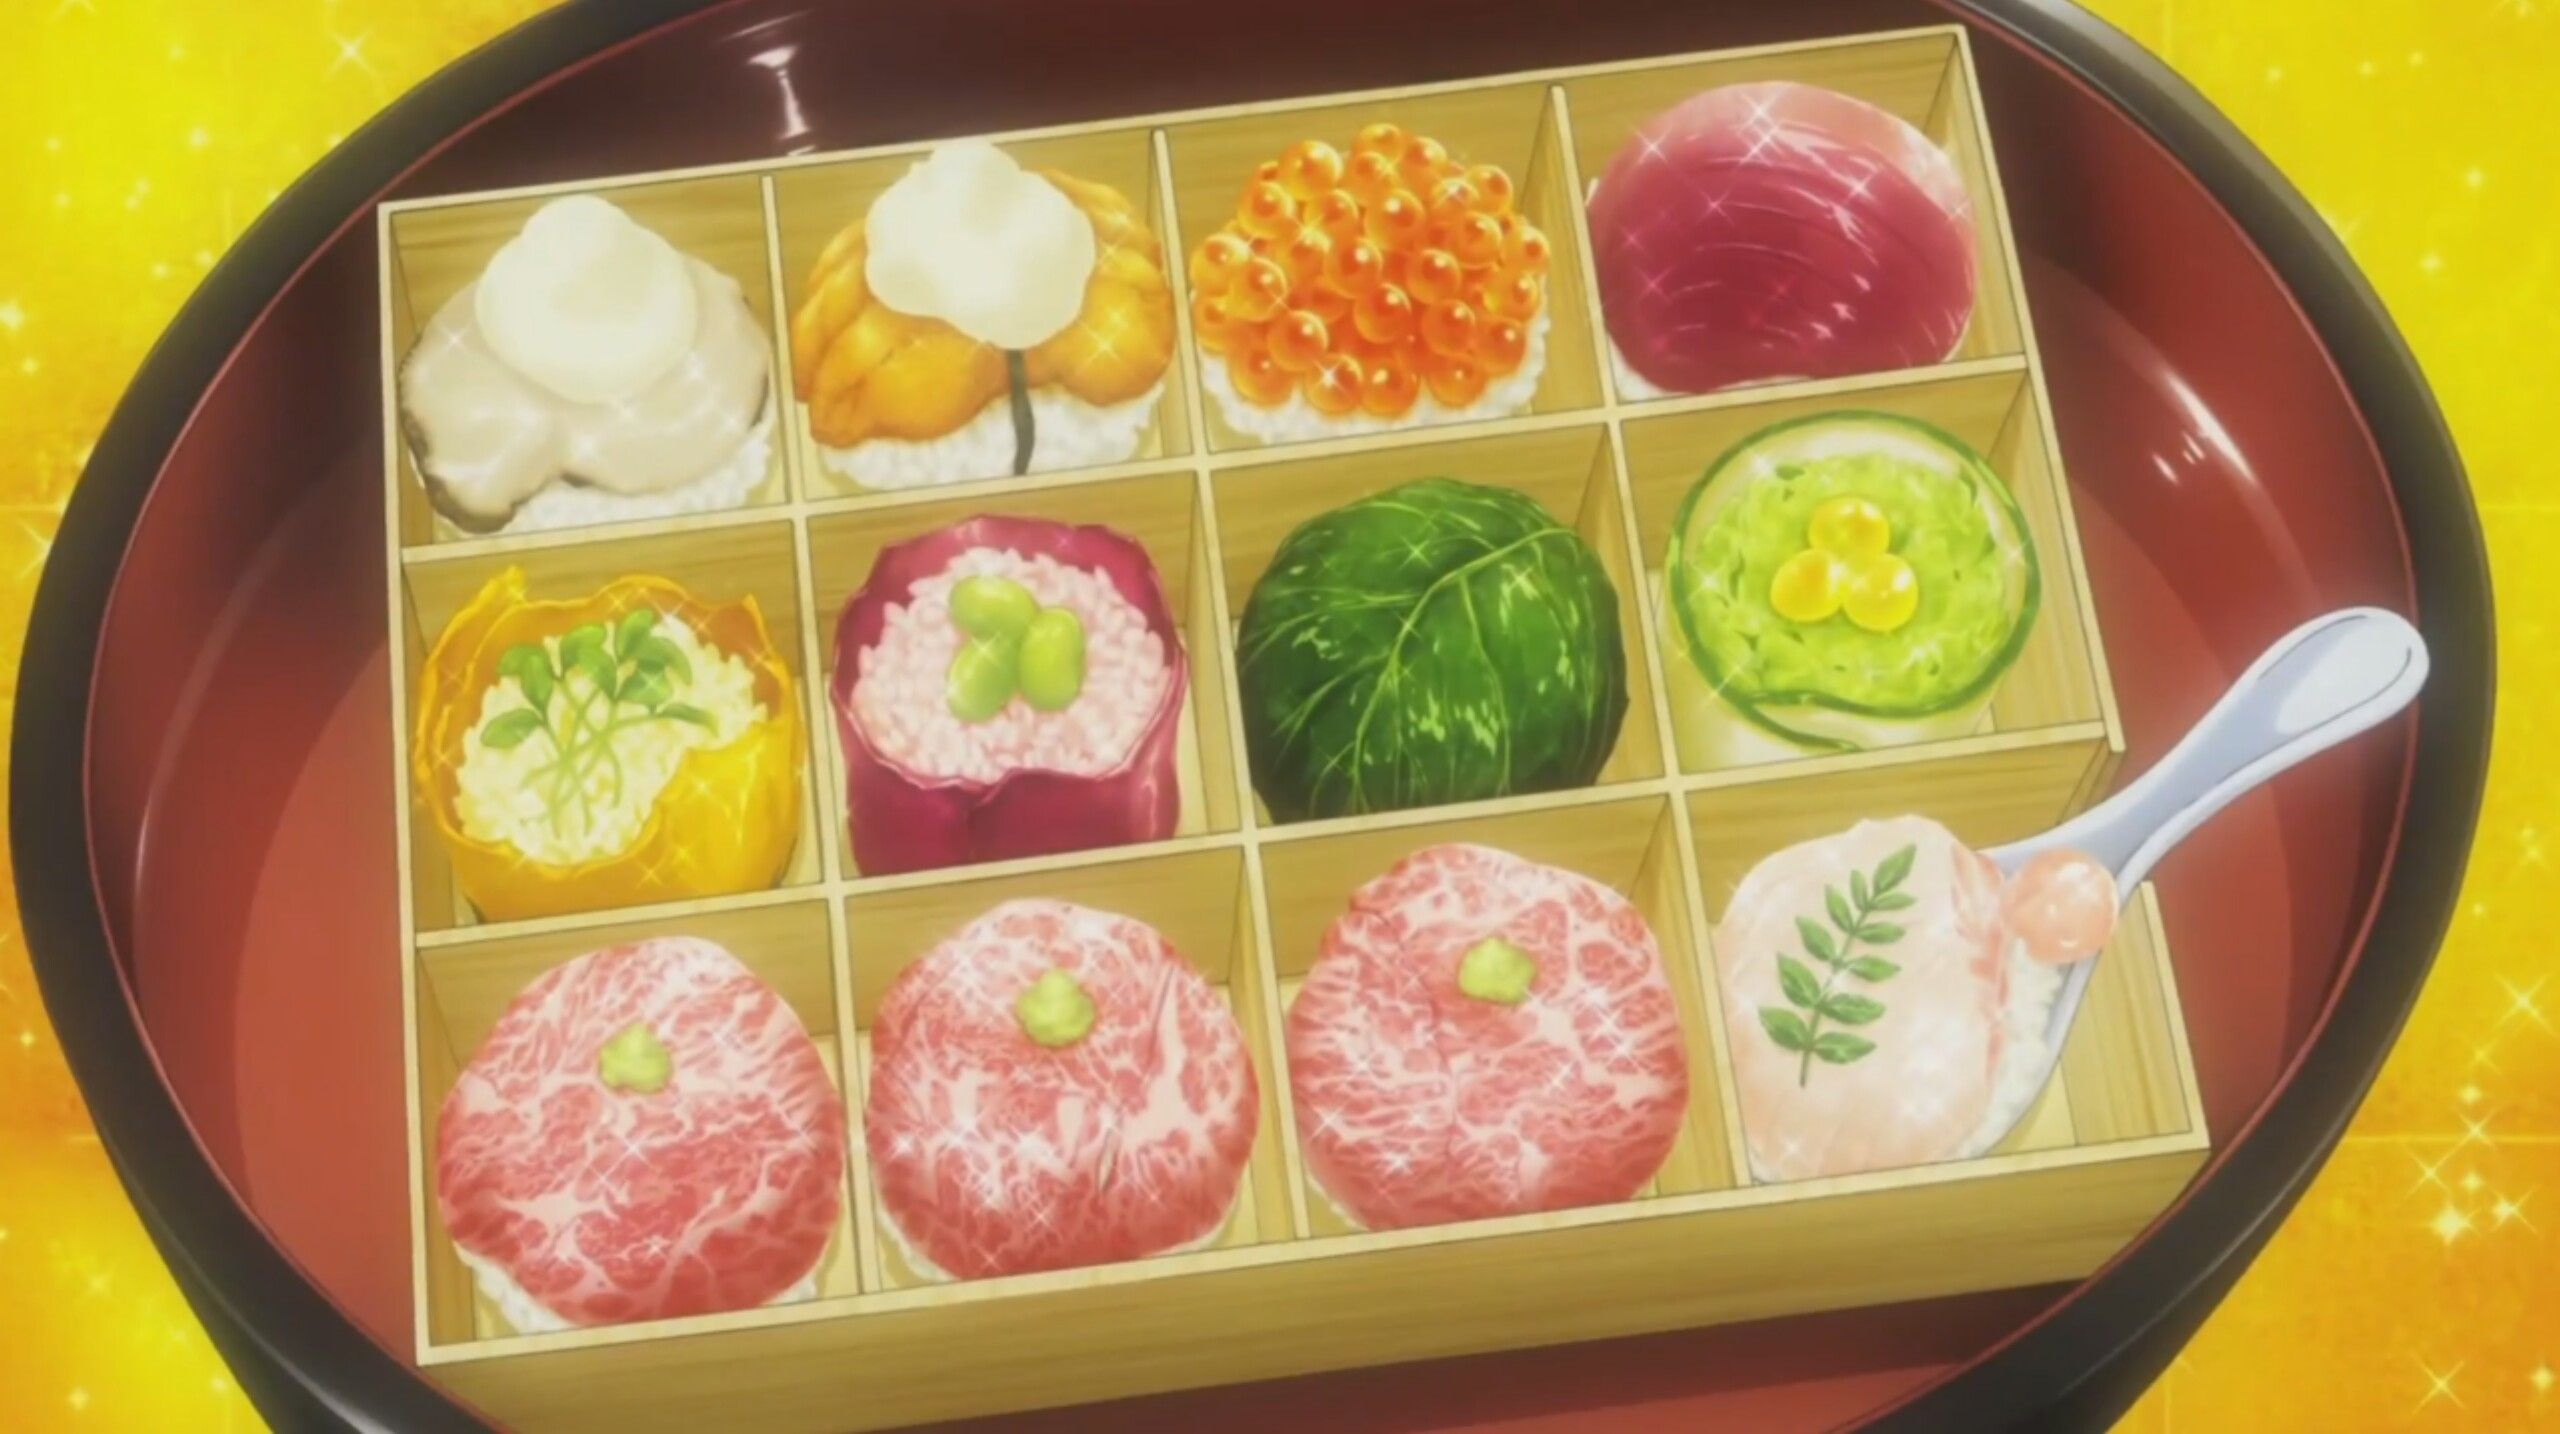 Pin by Myst on Bento Food wars, Food, Food illustrations